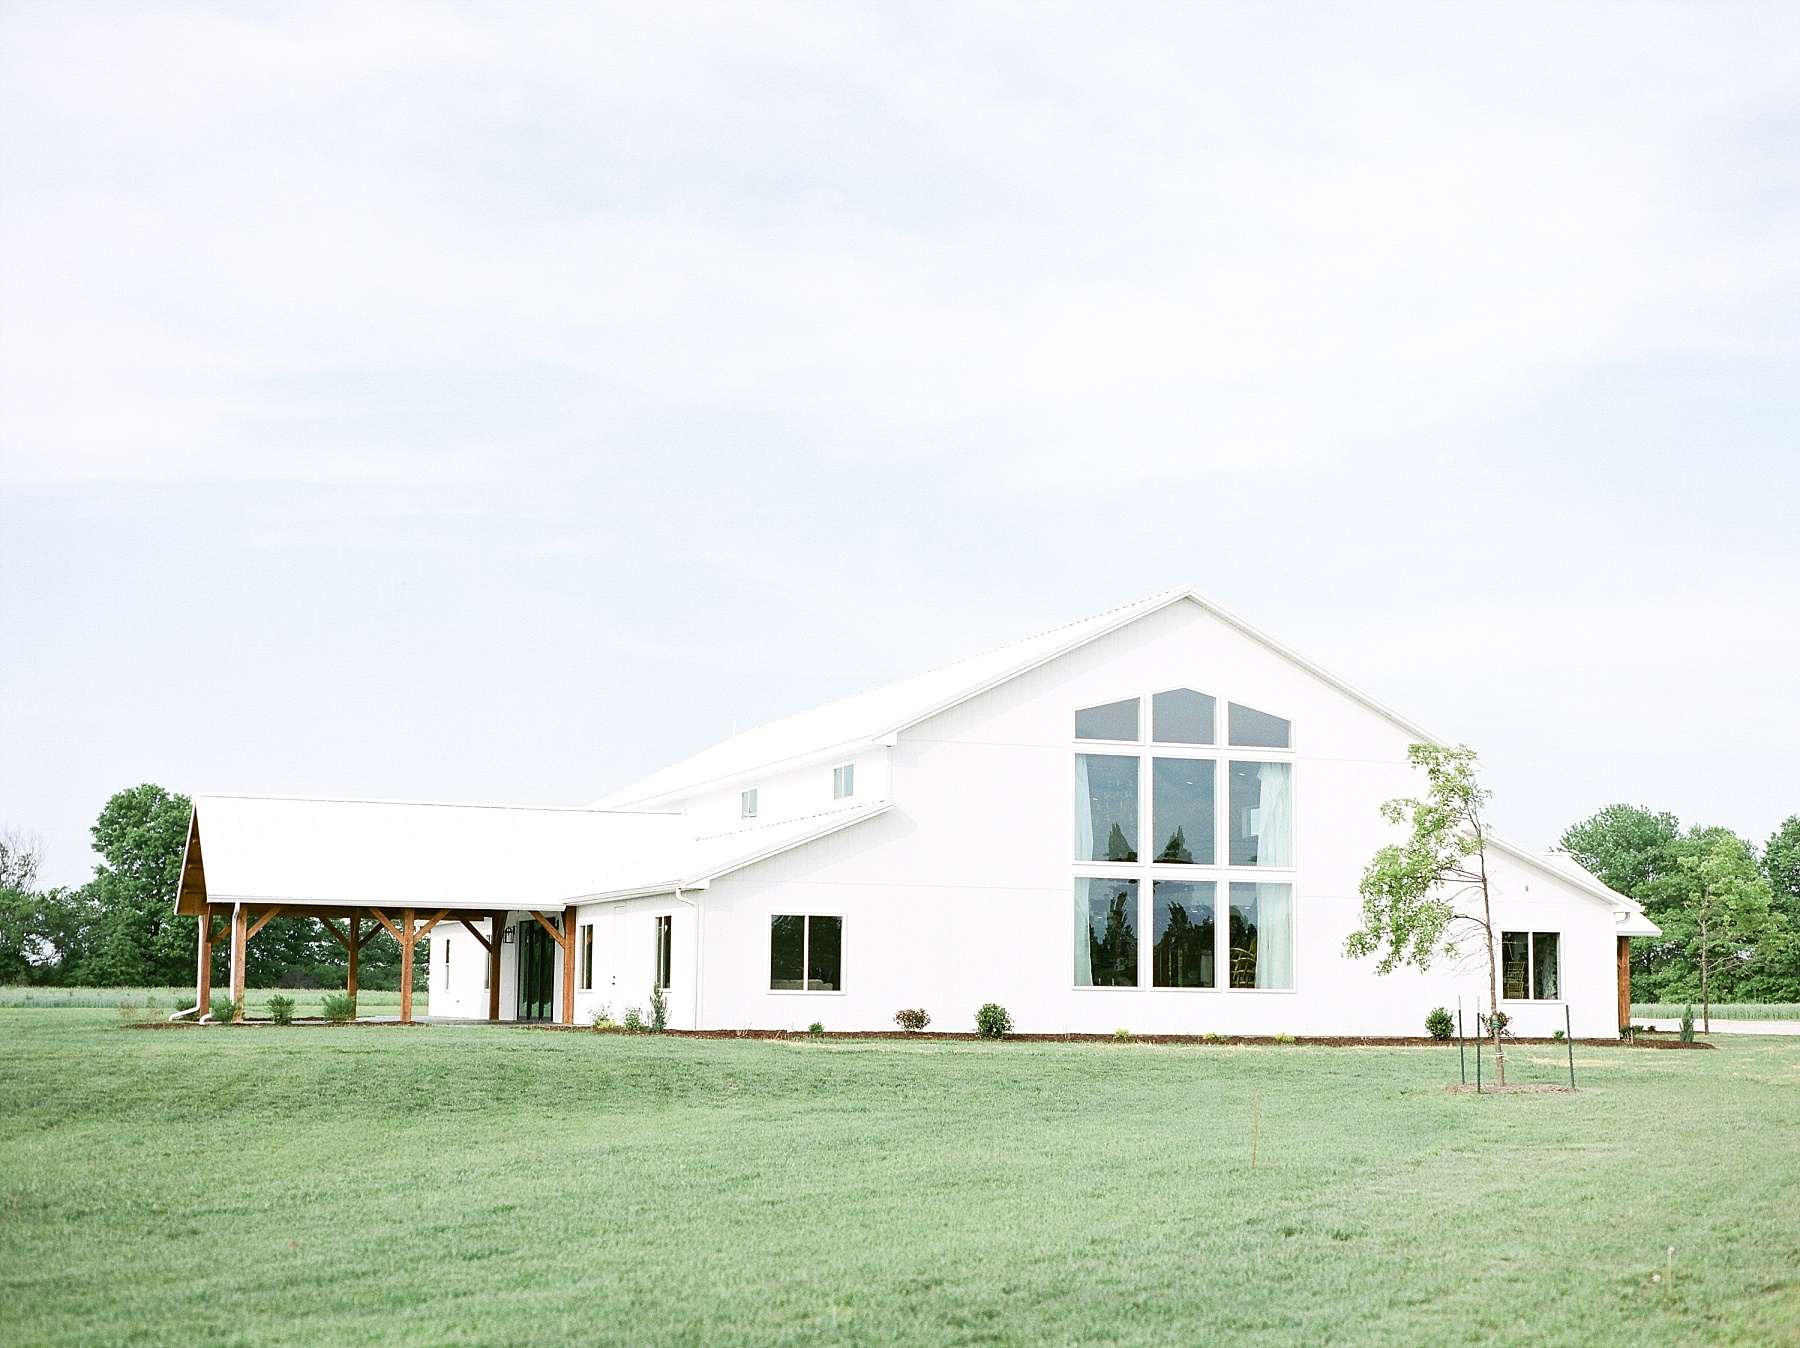 Textural Organic Wedding in All White Venue by Kelsi Kliethermes Wedding Photographer - Missouri, Midwest, and Destinations_0001.jpg